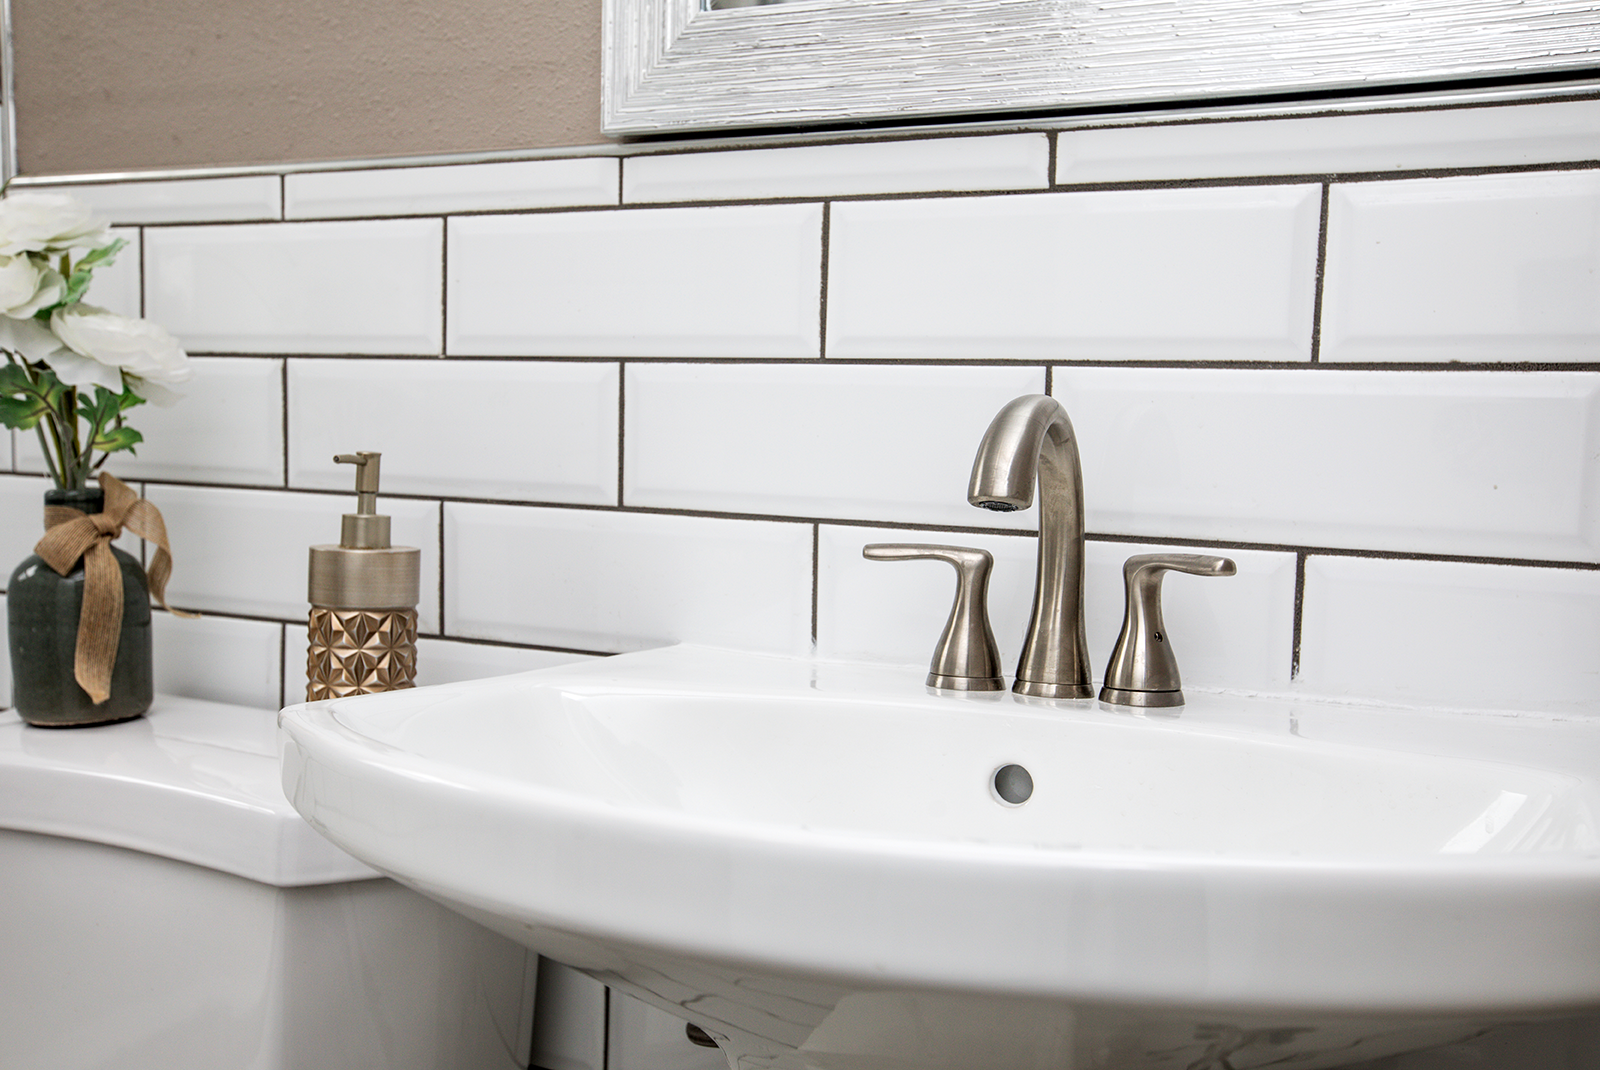 How To Use Tile To Make A Bathroom Look Bigger Edina Realty